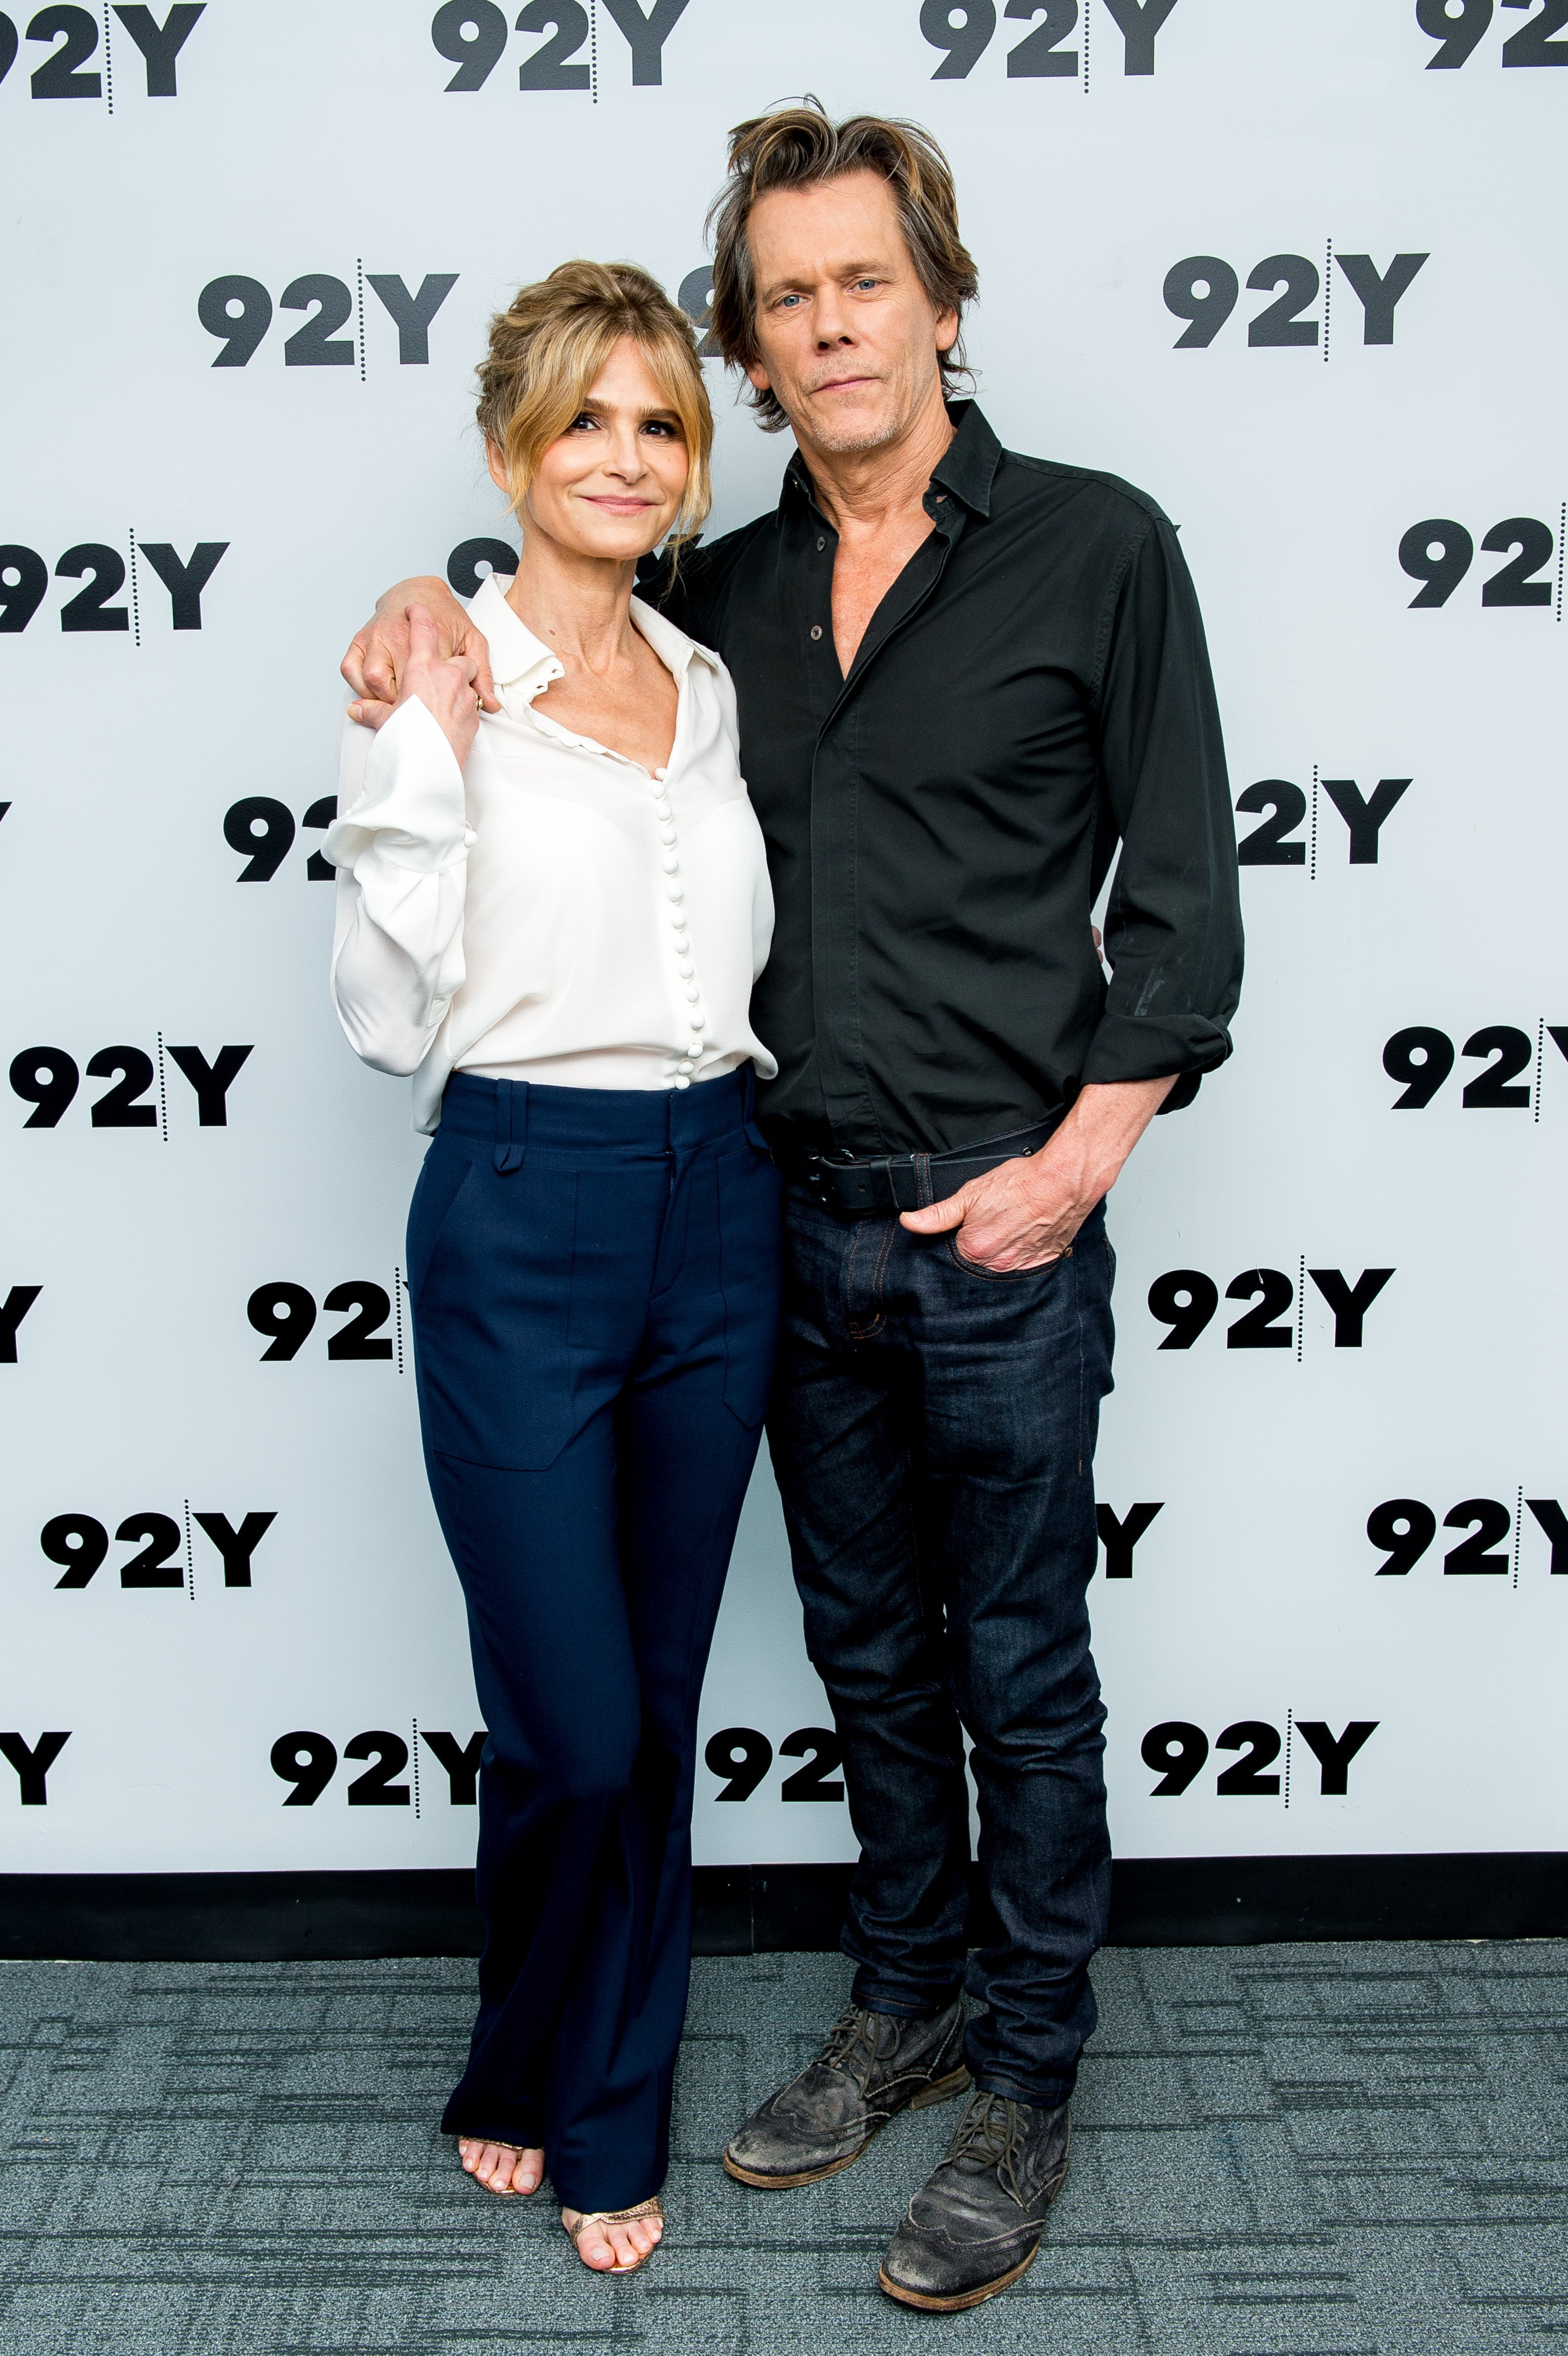 Kyra Sedgwick and Kevin Bacon attend In Conversation at 92nd Street Y on July 19, 2017 | Photo: GettyImages